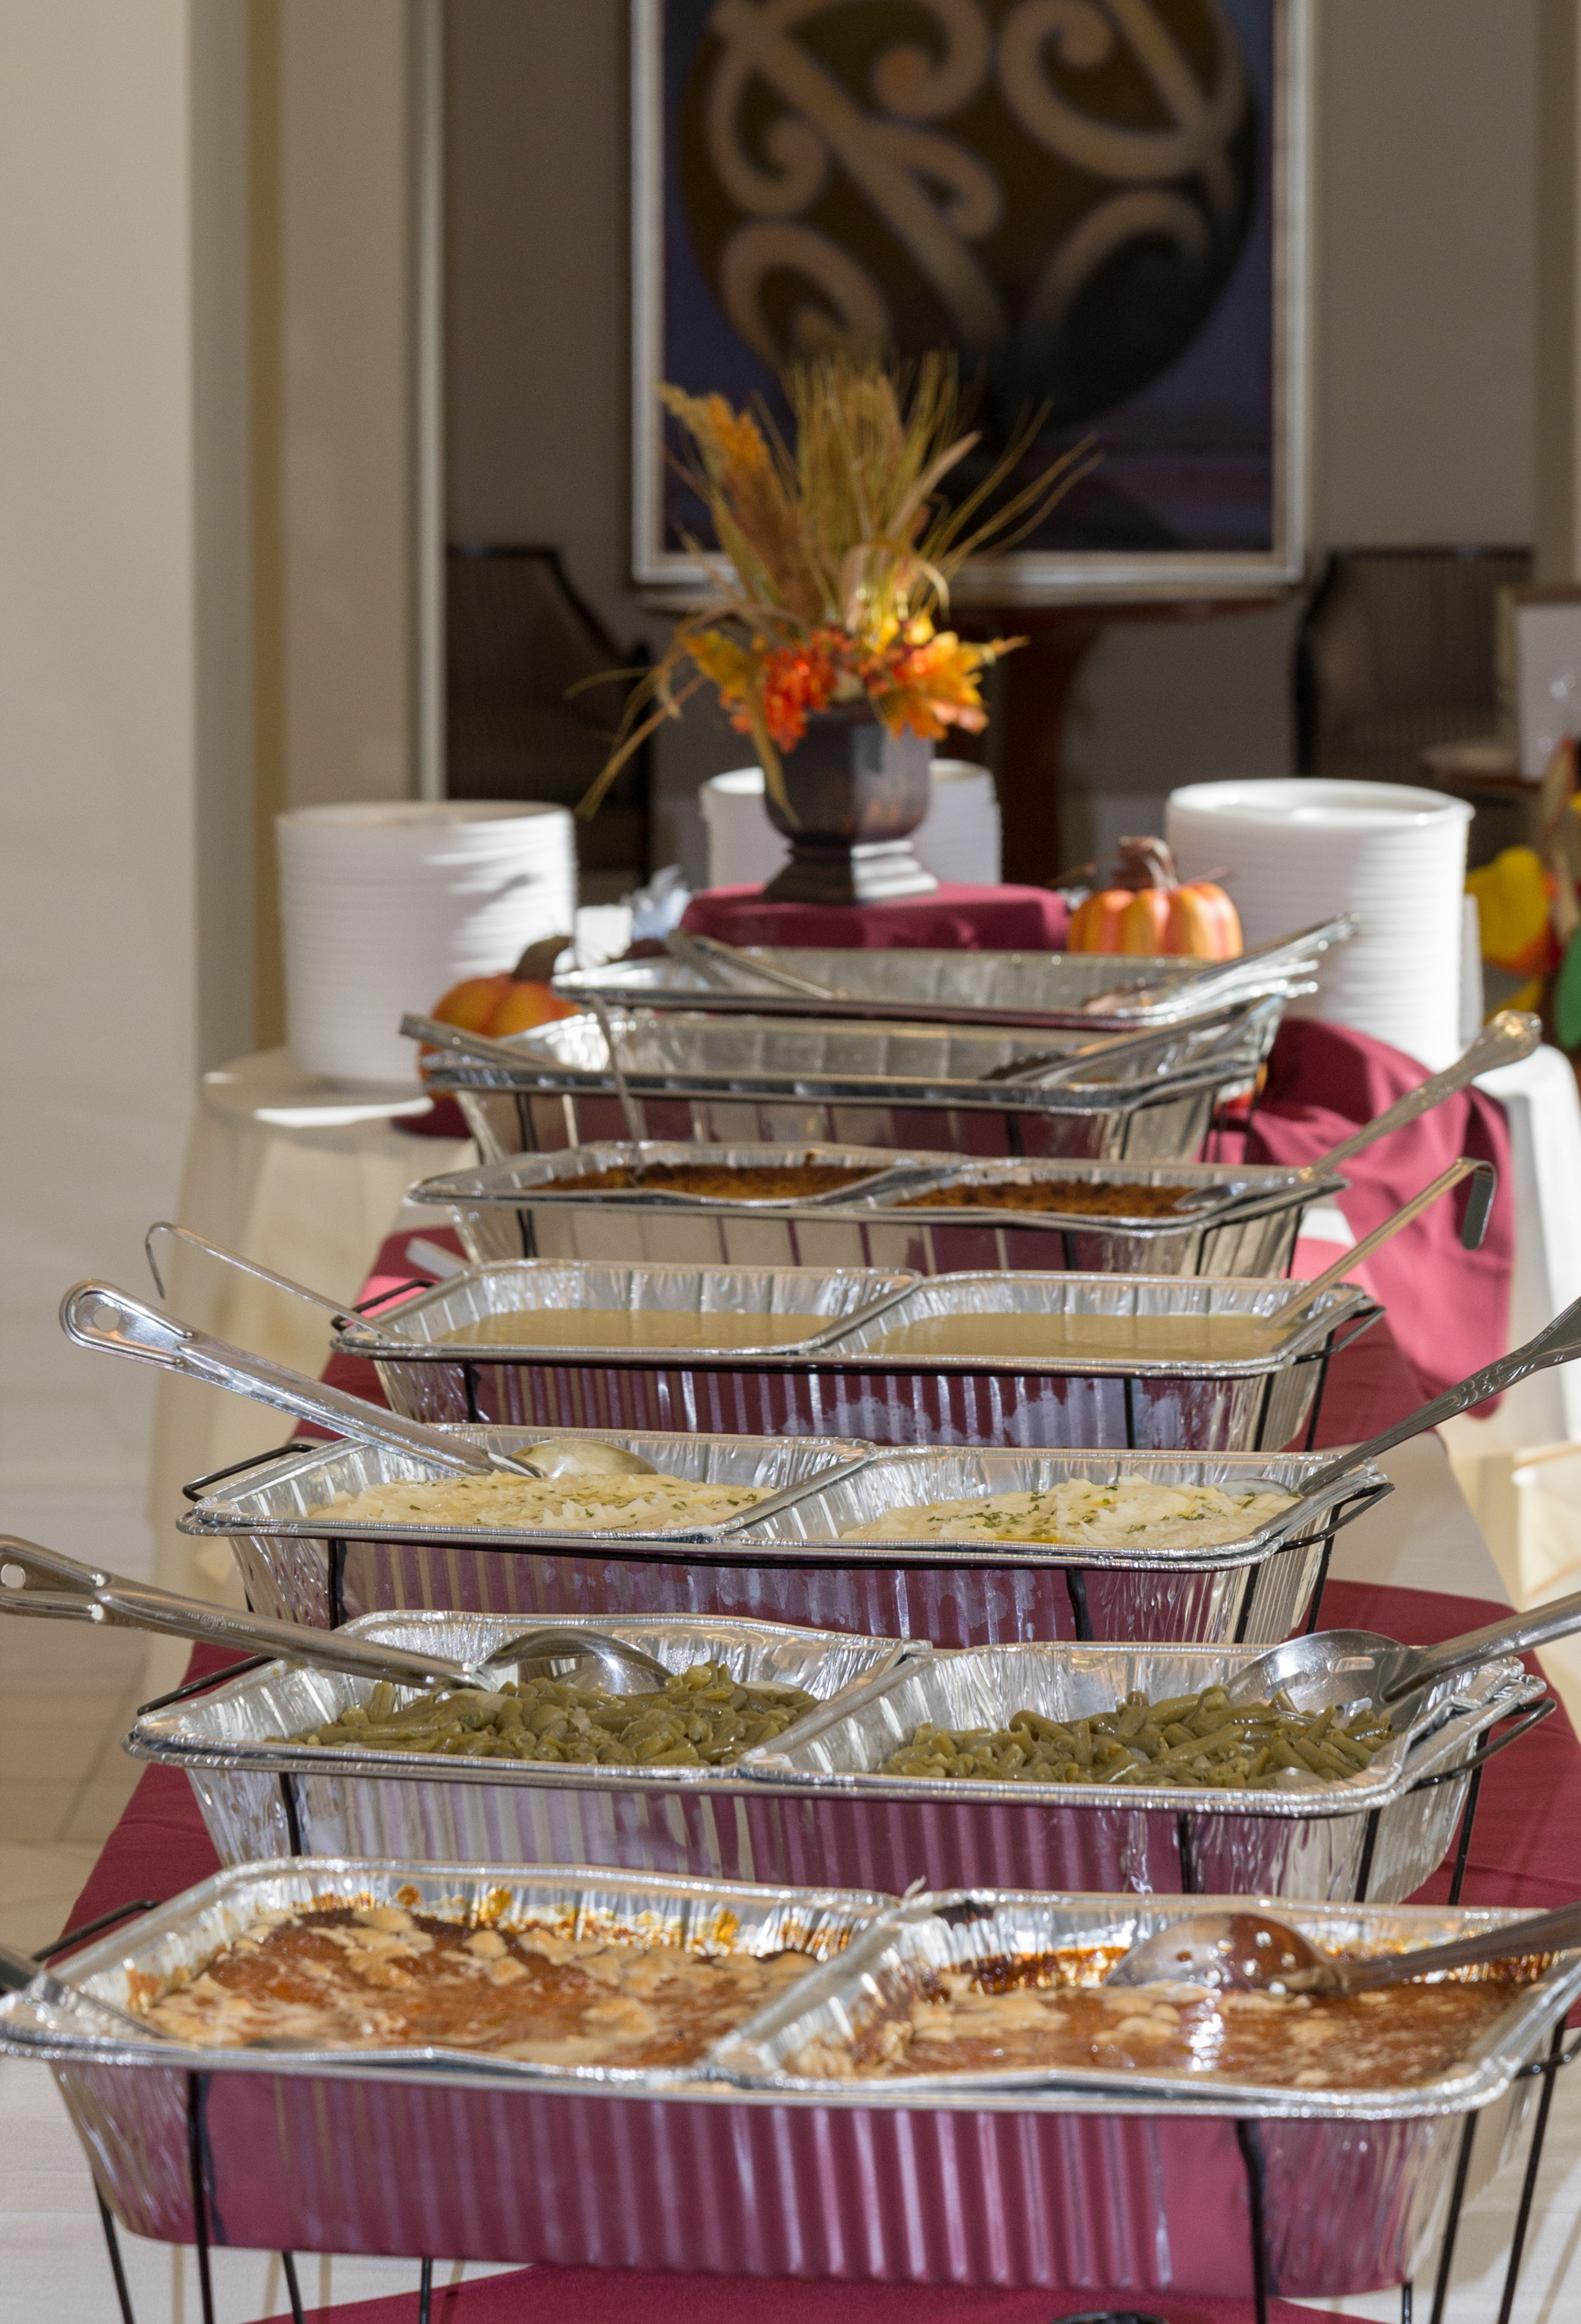 Family Reunion Catering With Images Family Reunion Food